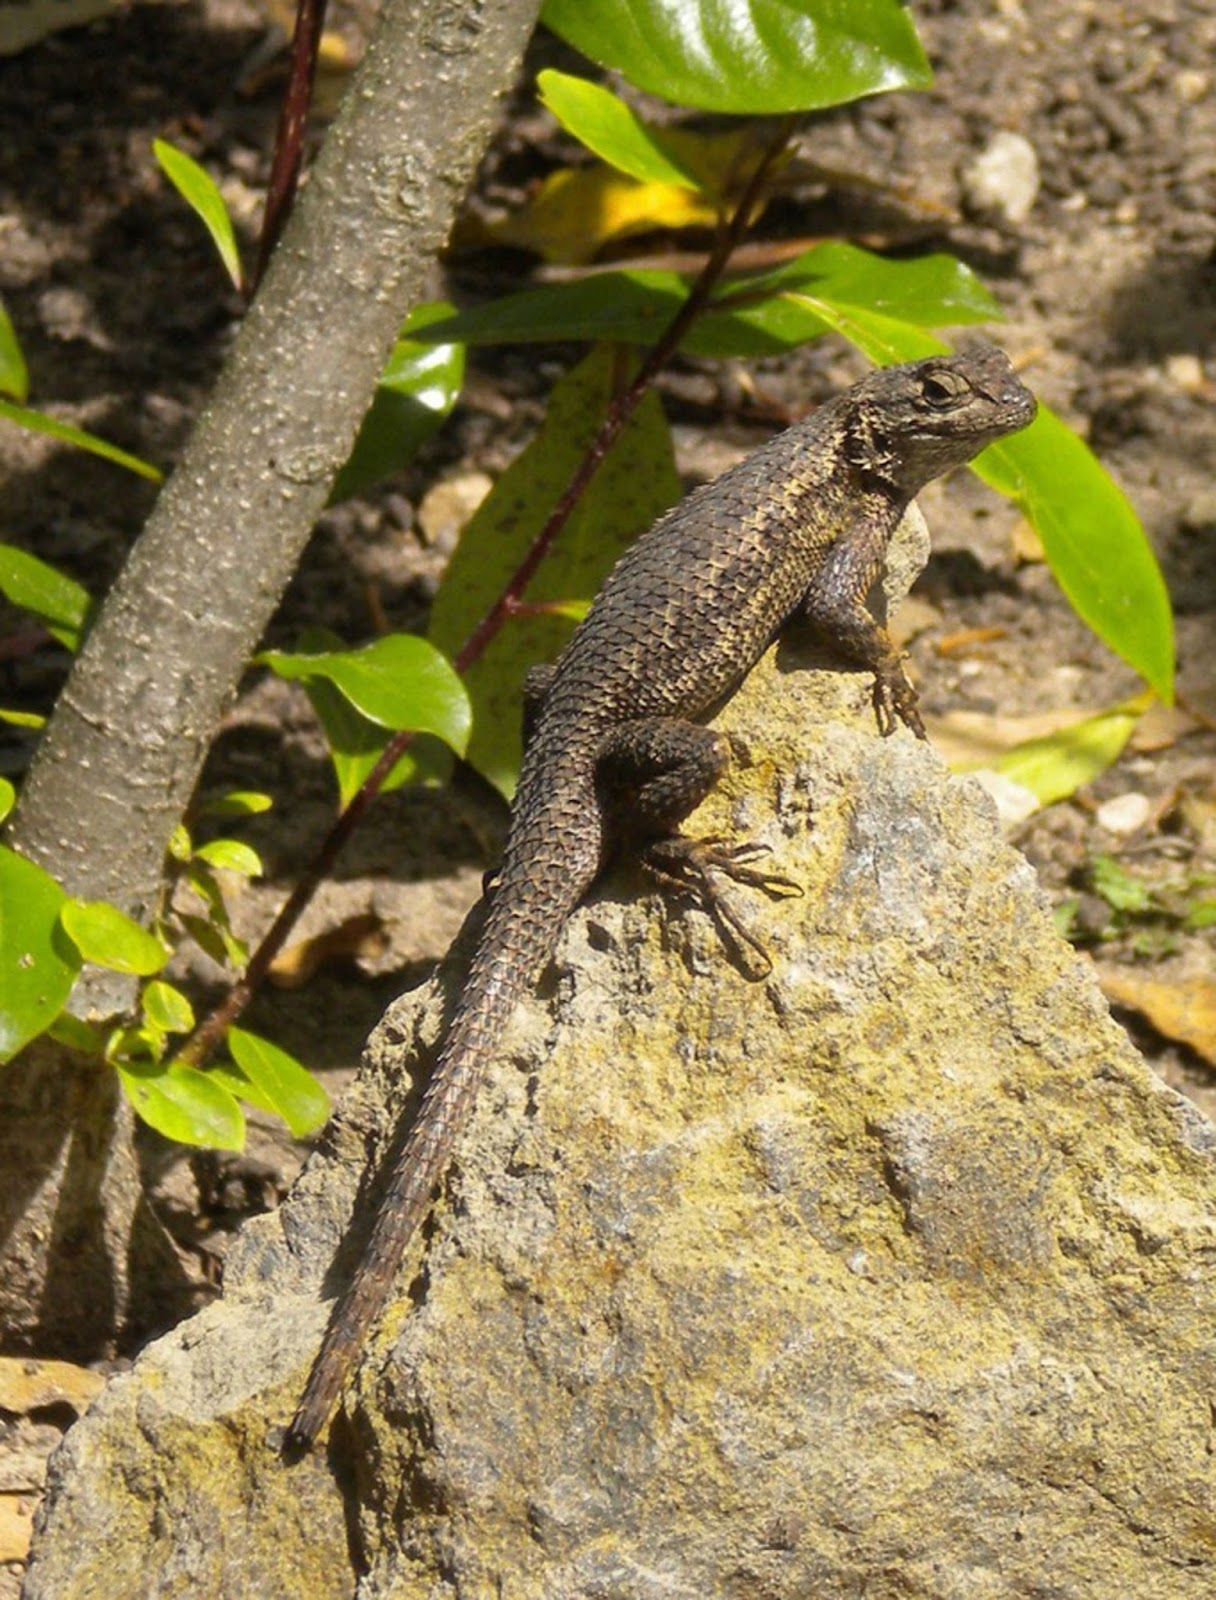 The Malibu Post: Living with Lizards